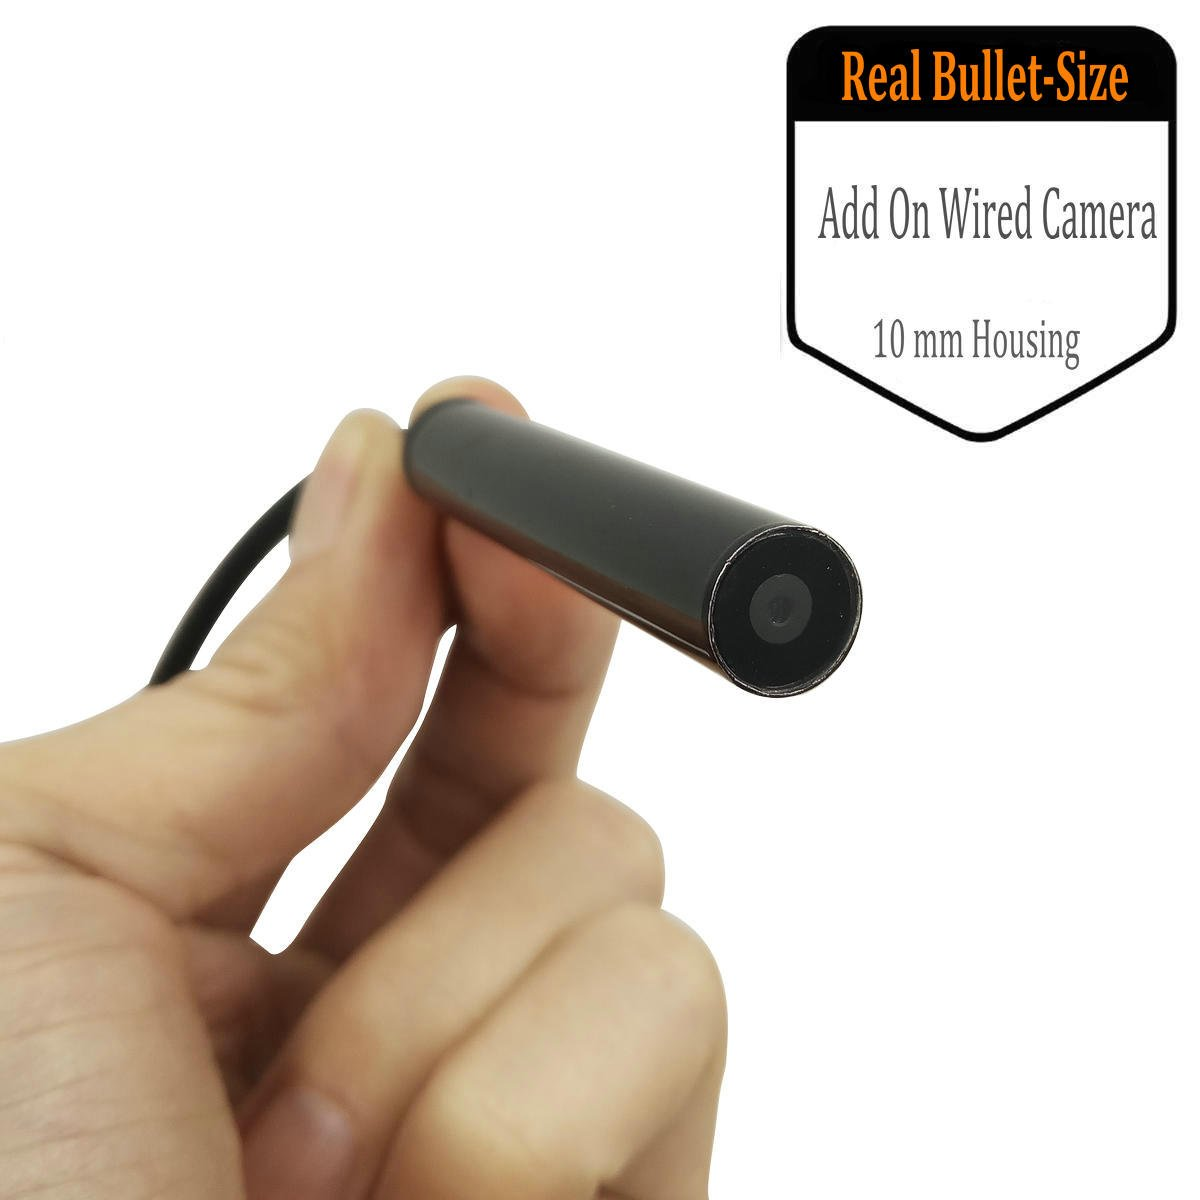 Mini 10MM Security Camera,FocusHD Real Bullet-Size 720P Covert Surveillance Camera Built with 60ft Extension Cable Compatible with AHD CVI DVR Recording System(Power Adapter Included)